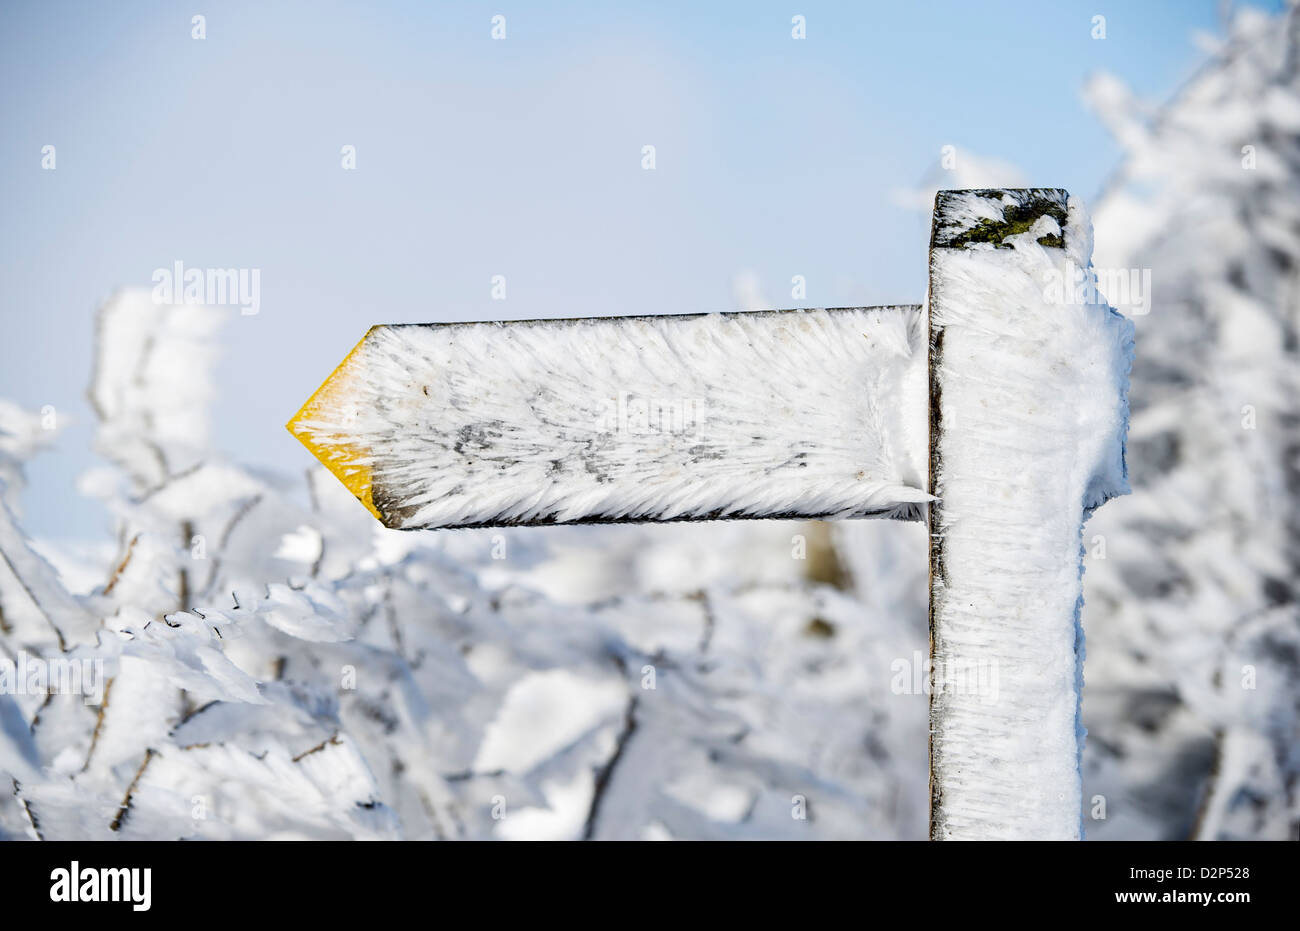 A wind snow frosted footpath sign on Exmoor in Winter, UK - Stock Image